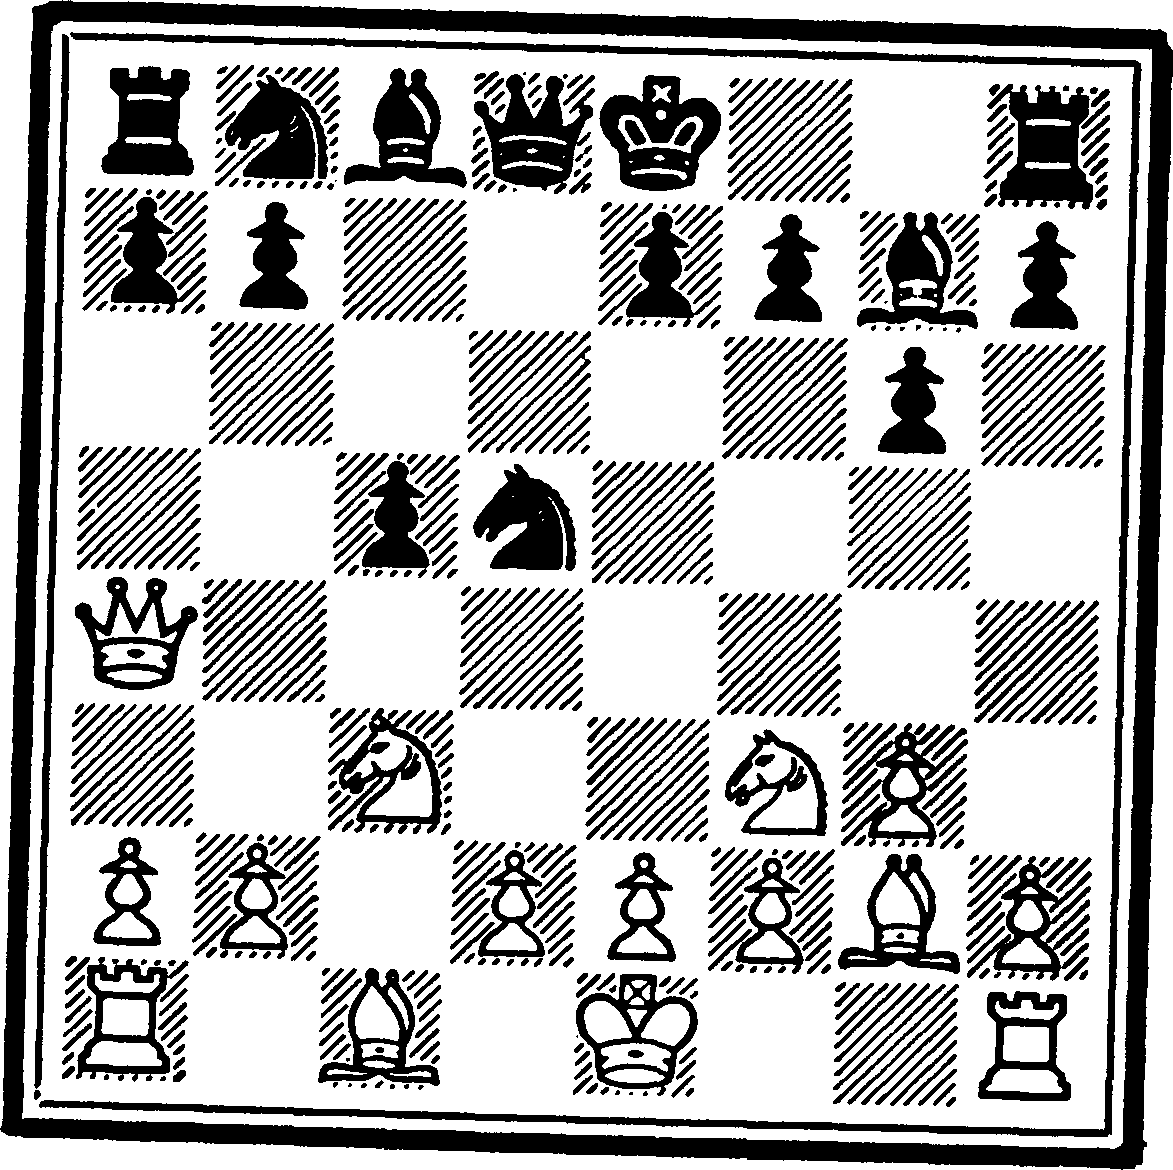 Karpov Chess Games